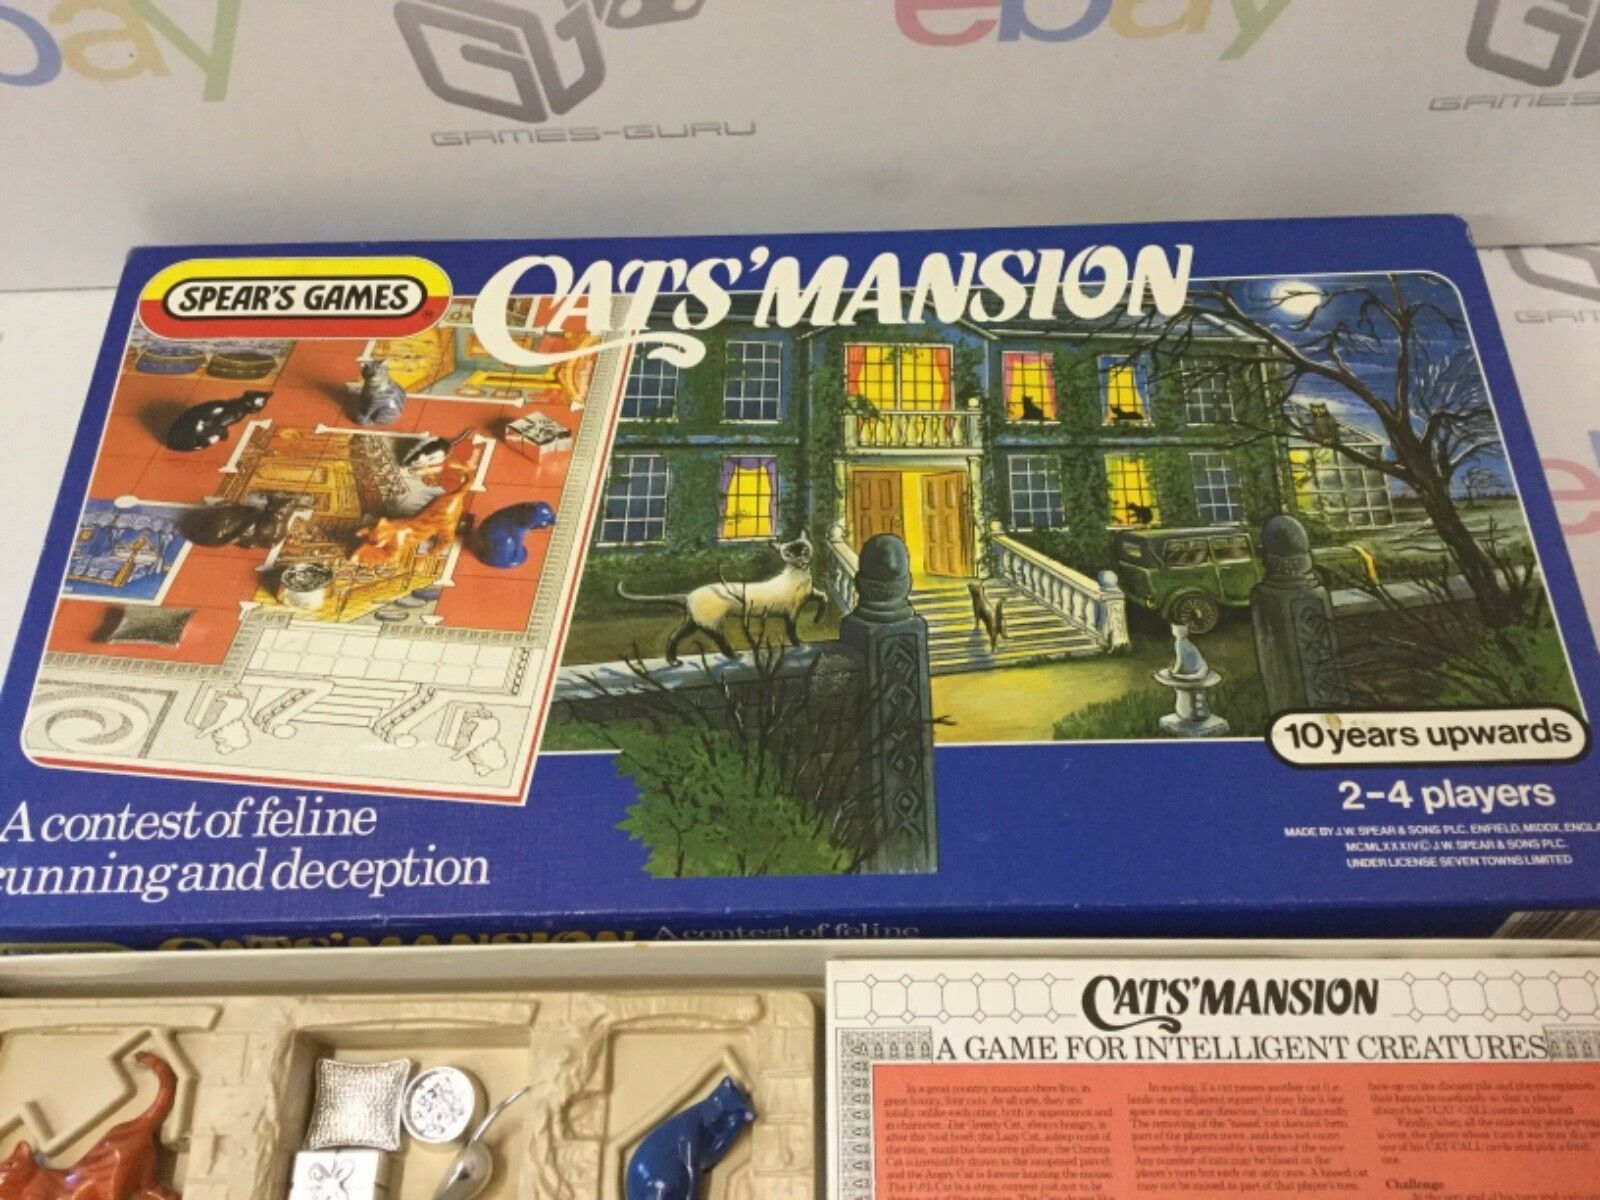 Cat's Mansion (Spear's Games, 1984) - Complete Board Game Complete retro vintage